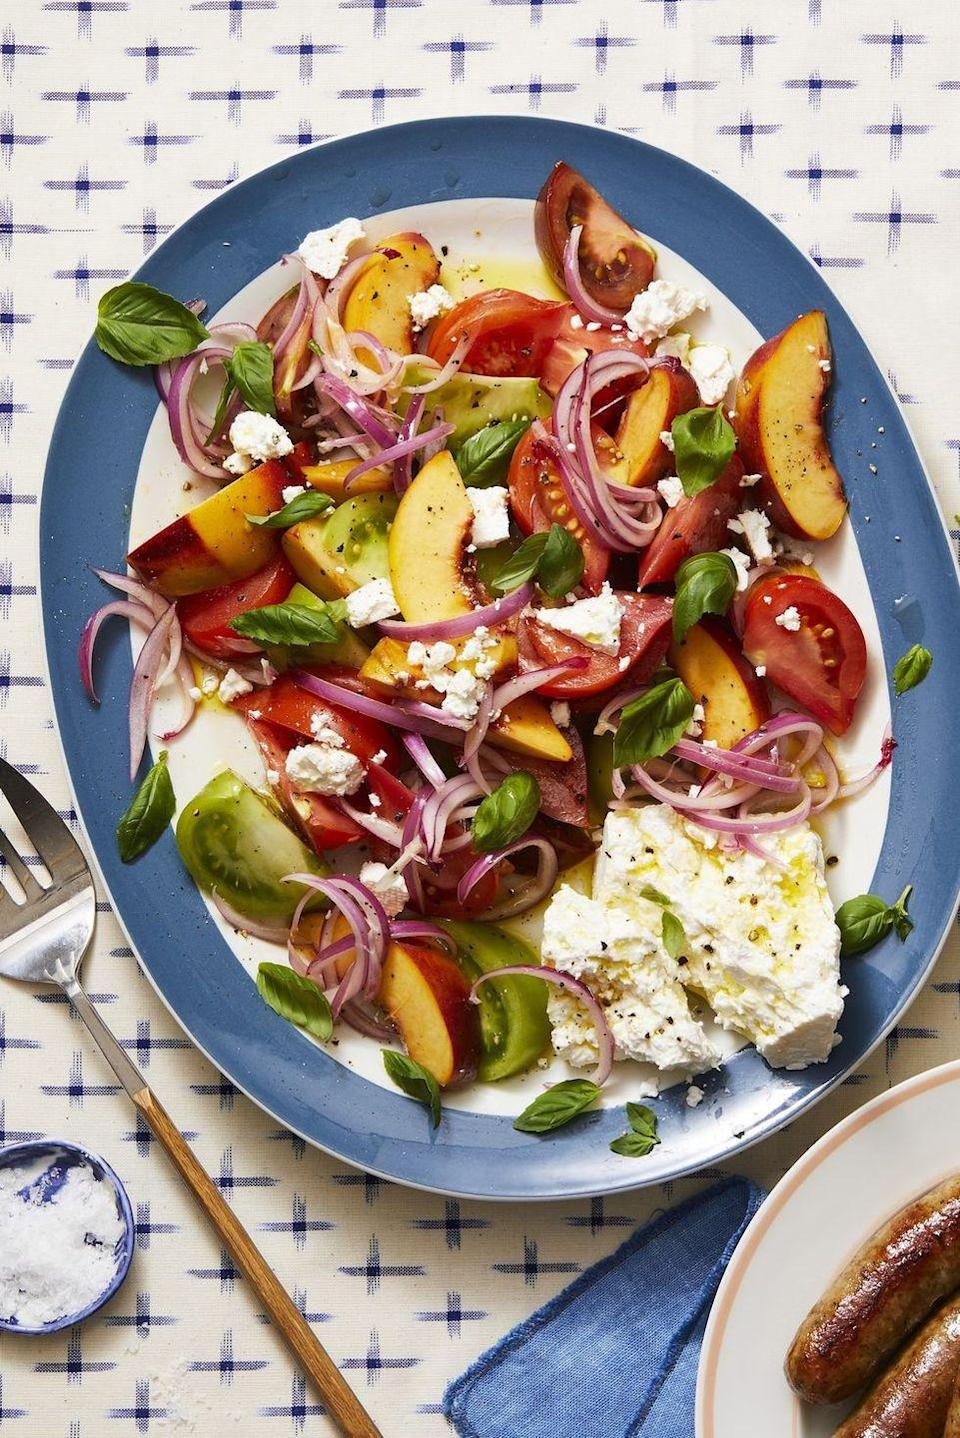 """<p>This 10-minute, sweet and savory salad adds a twist to juicy in-season peaches.</p><p><em><a href=""""https://www.goodhousekeeping.com/food-recipes/a28136659/tomato-peach-and-basil-salad-recipe/"""" rel=""""nofollow noopener"""" target=""""_blank"""" data-ylk=""""slk:Get the recipe for Tomato, Peach, and Basil Salad »"""" class=""""link rapid-noclick-resp"""">Get the recipe for Tomato, Peach, and Basil Salad » </a></em></p><p><strong>RELATED: </strong><a href=""""https://www.goodhousekeeping.com/food-recipes/healthy/g180/healthy-salads/"""" rel=""""nofollow noopener"""" target=""""_blank"""" data-ylk=""""slk:31 Healthy Salads for a Very Filling, Very Un-boring Meal"""" class=""""link rapid-noclick-resp"""">31 Healthy Salads for a Very Filling, Very Un-boring Meal</a><br></p>"""